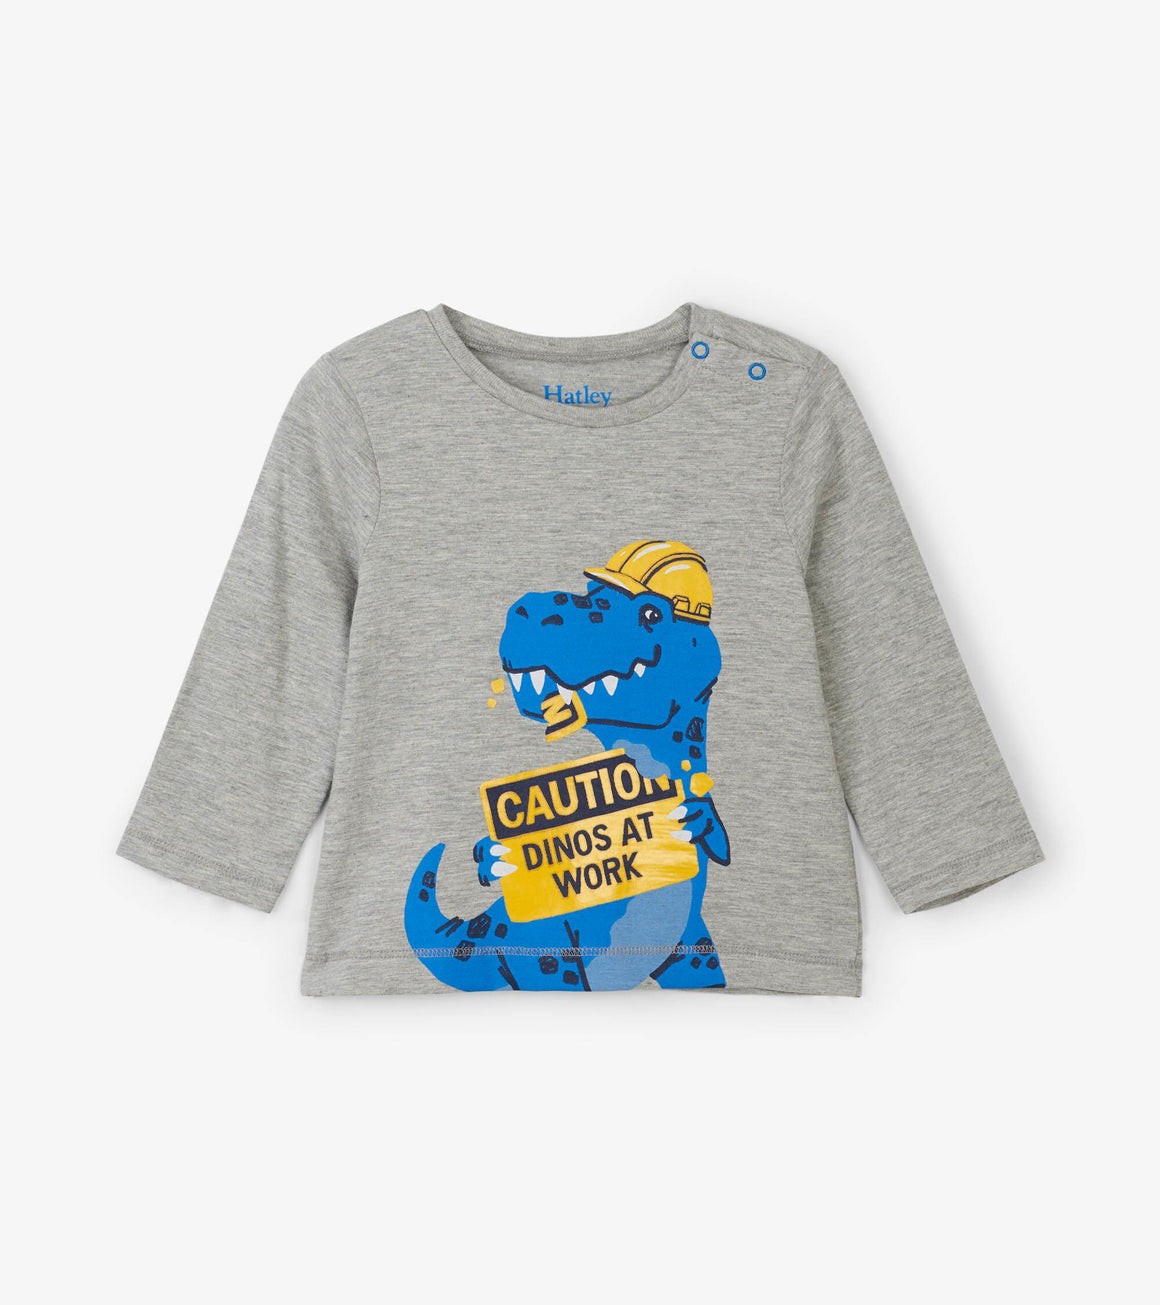 Hatley Dino Construction Worker Long Sleeve Baby Tee in Heather Grey